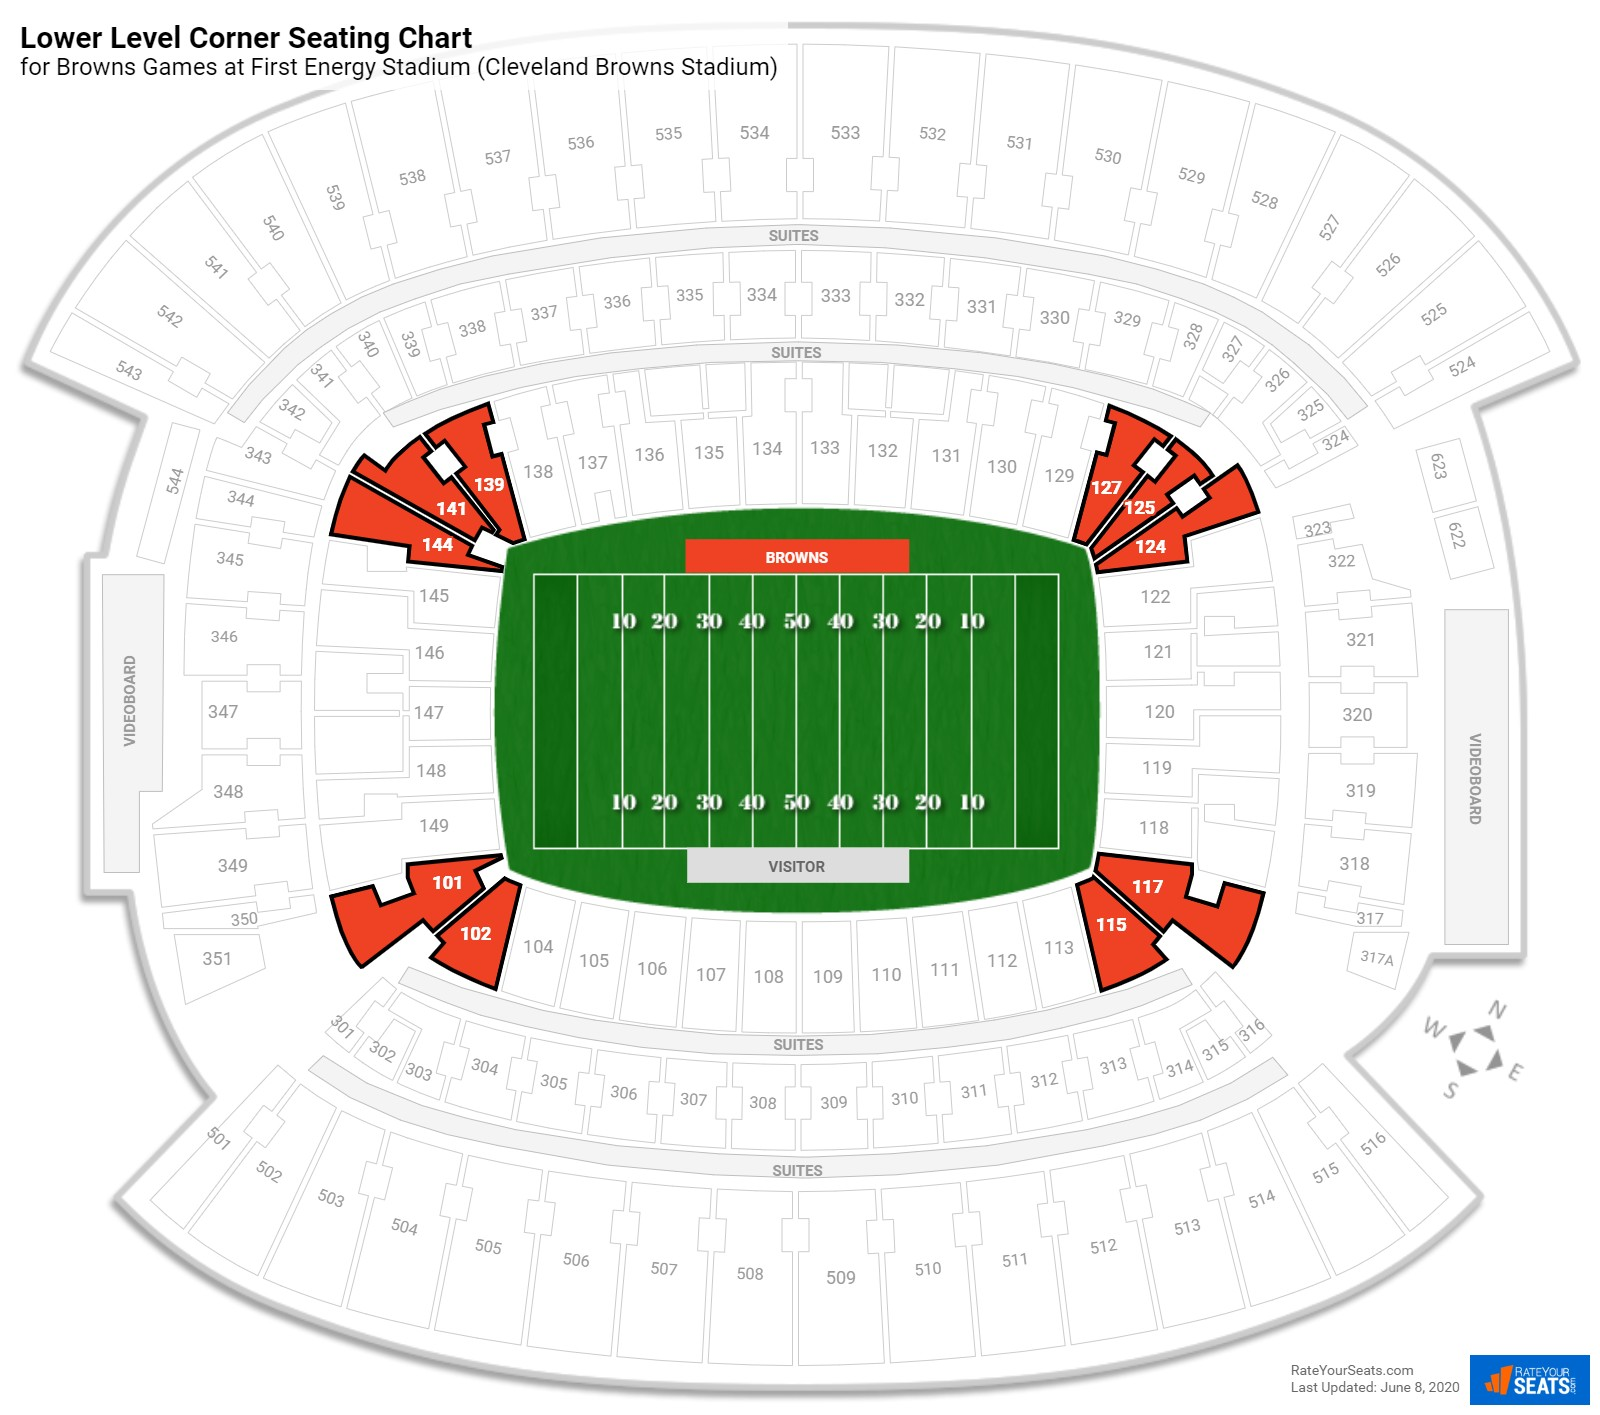 First Energy Stadium (Cleveland Browns Stadium) Lower Level Corner seating chart